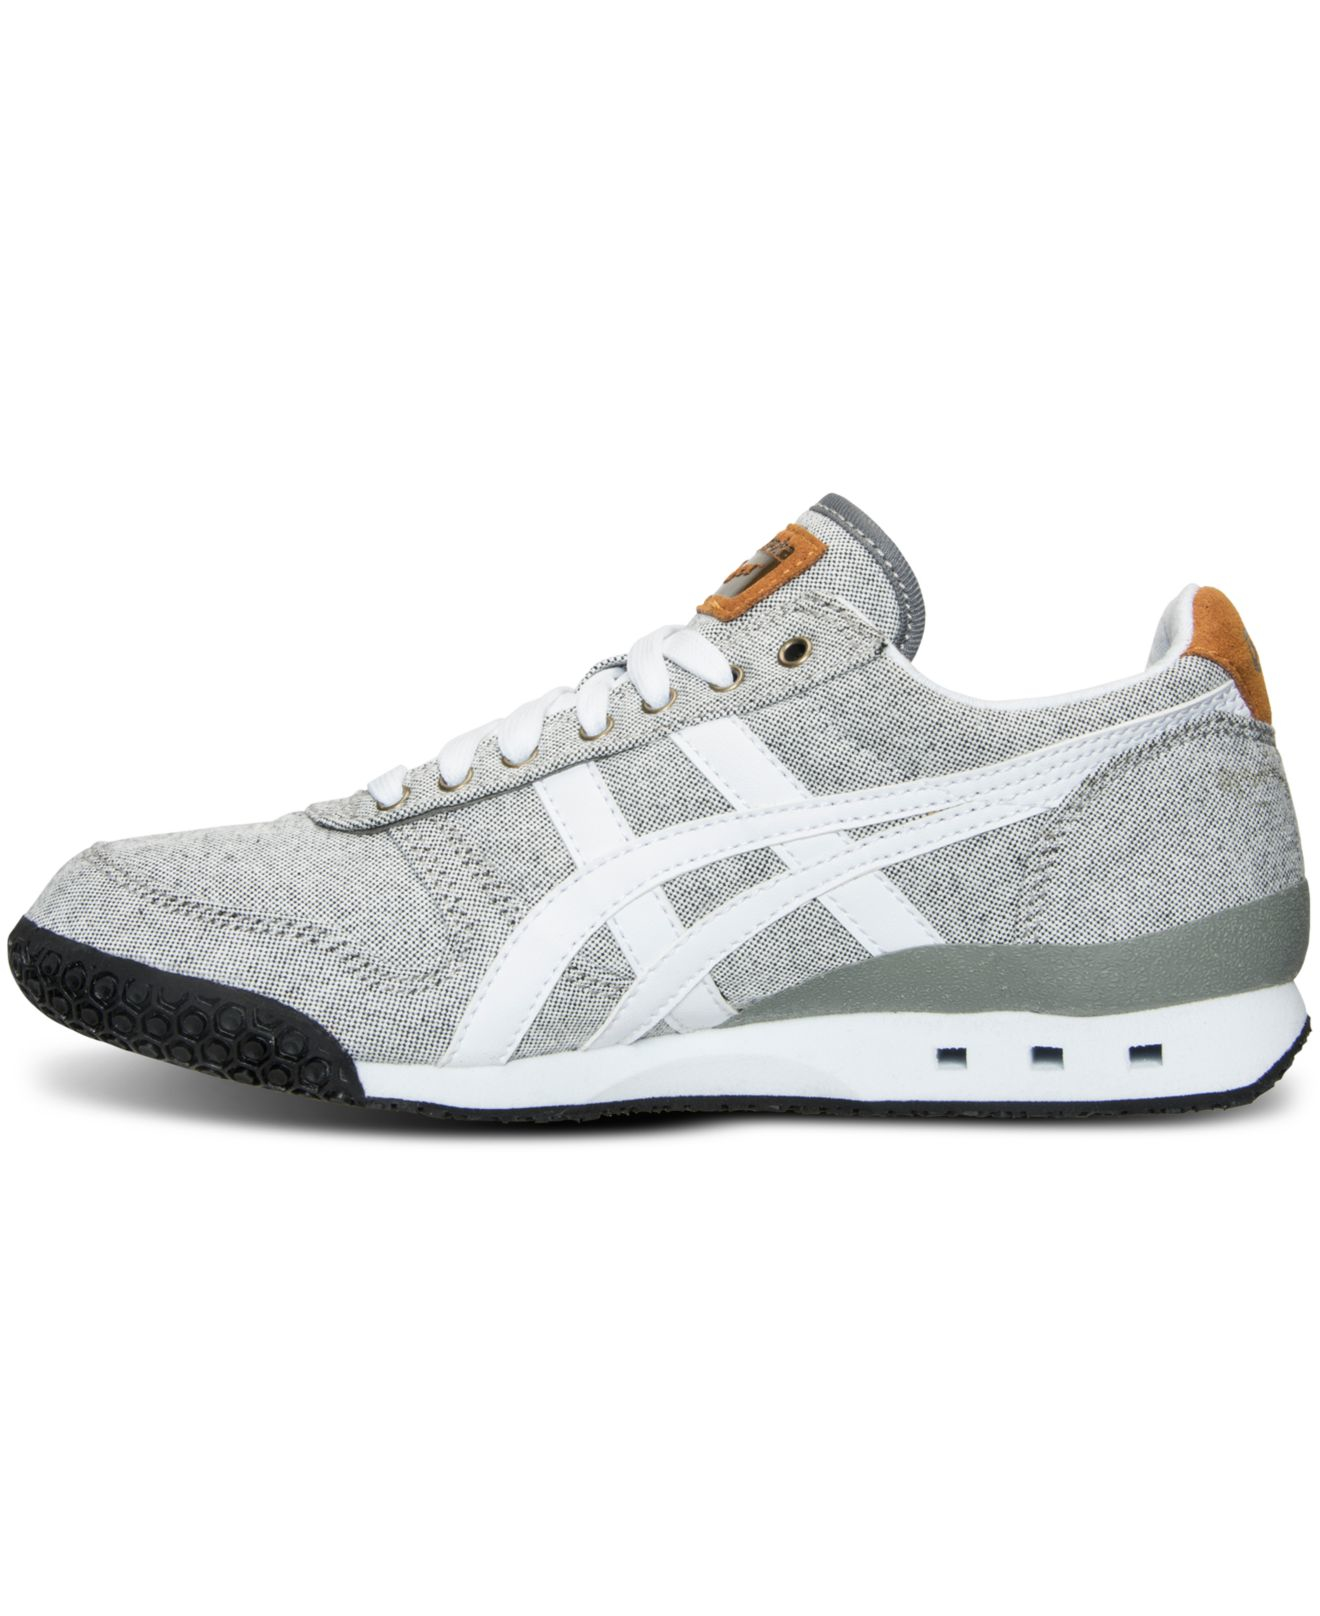 f61e1f686 asics ultimate 81 womens off 58% - www.institut-naturel.com